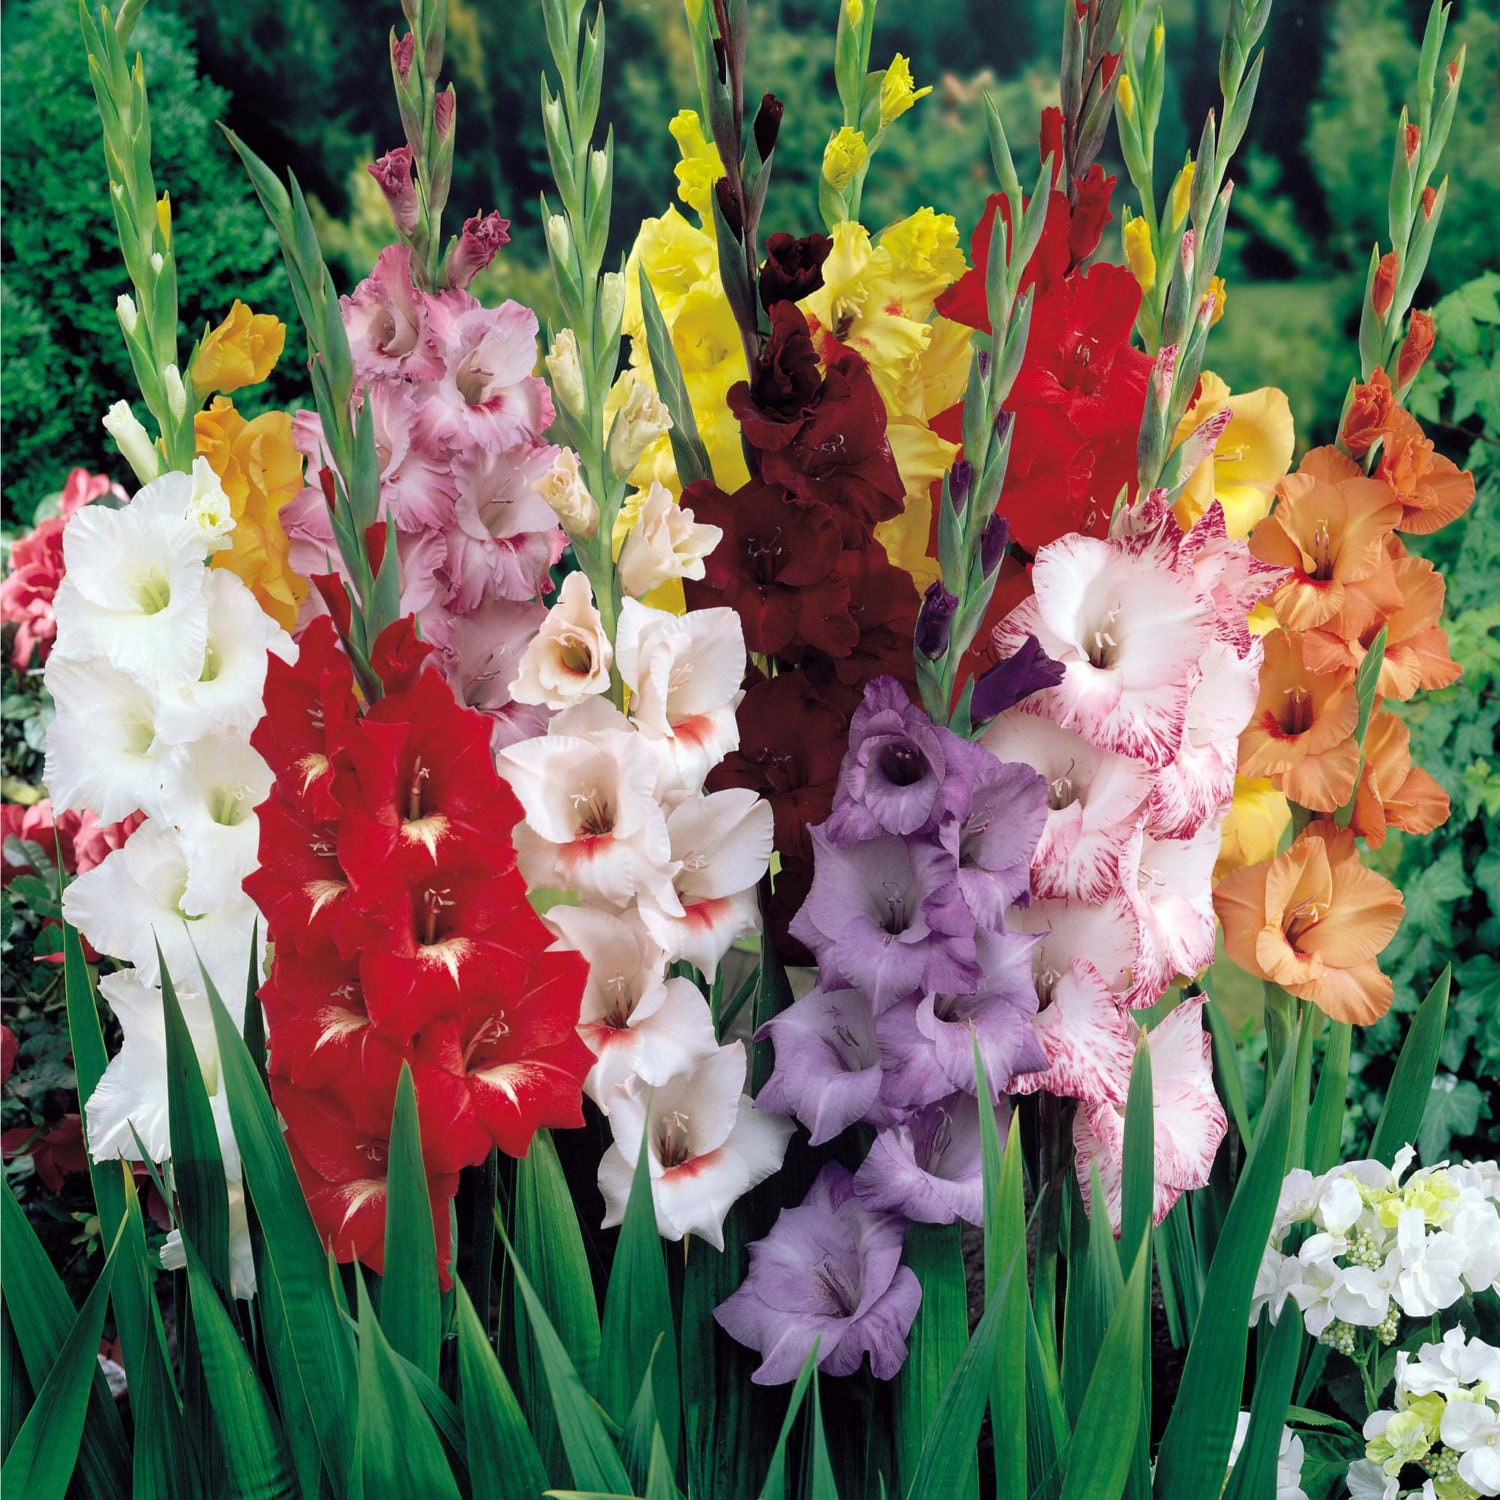 Multi Colored Mixed Gladiolus Bulbs by MoodyGardener on Etsy